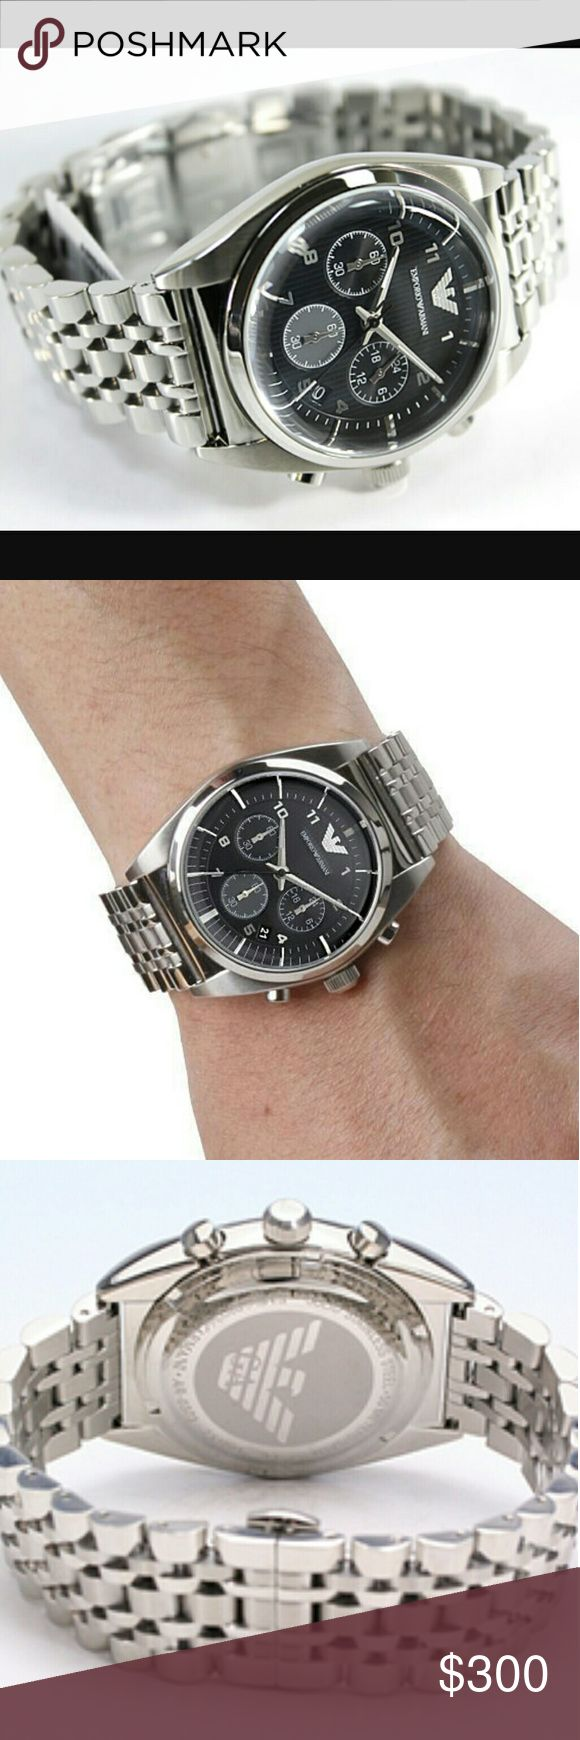 NWT Emporio Armani Stainless chronograph watch EMPORIO ARMANI MEN'S LUXURY DRESS STYLE CHRONOGRAPH WATCH.  PRICE? $300.00 . AUTHENTIC WATCH? . AUTHENTIC BOX? . AUTHENTIC MANUAL  SHIPPING PLEASE ALLOW 3-4 BUSINESS DAYS FOR ME TO SHIPPED IT OFF O373.I HAVE TO GET IT FROM MY STORE  THANK YOU FOR YOUR UNDERSTANDING. Emporio Armani Accessories Watches